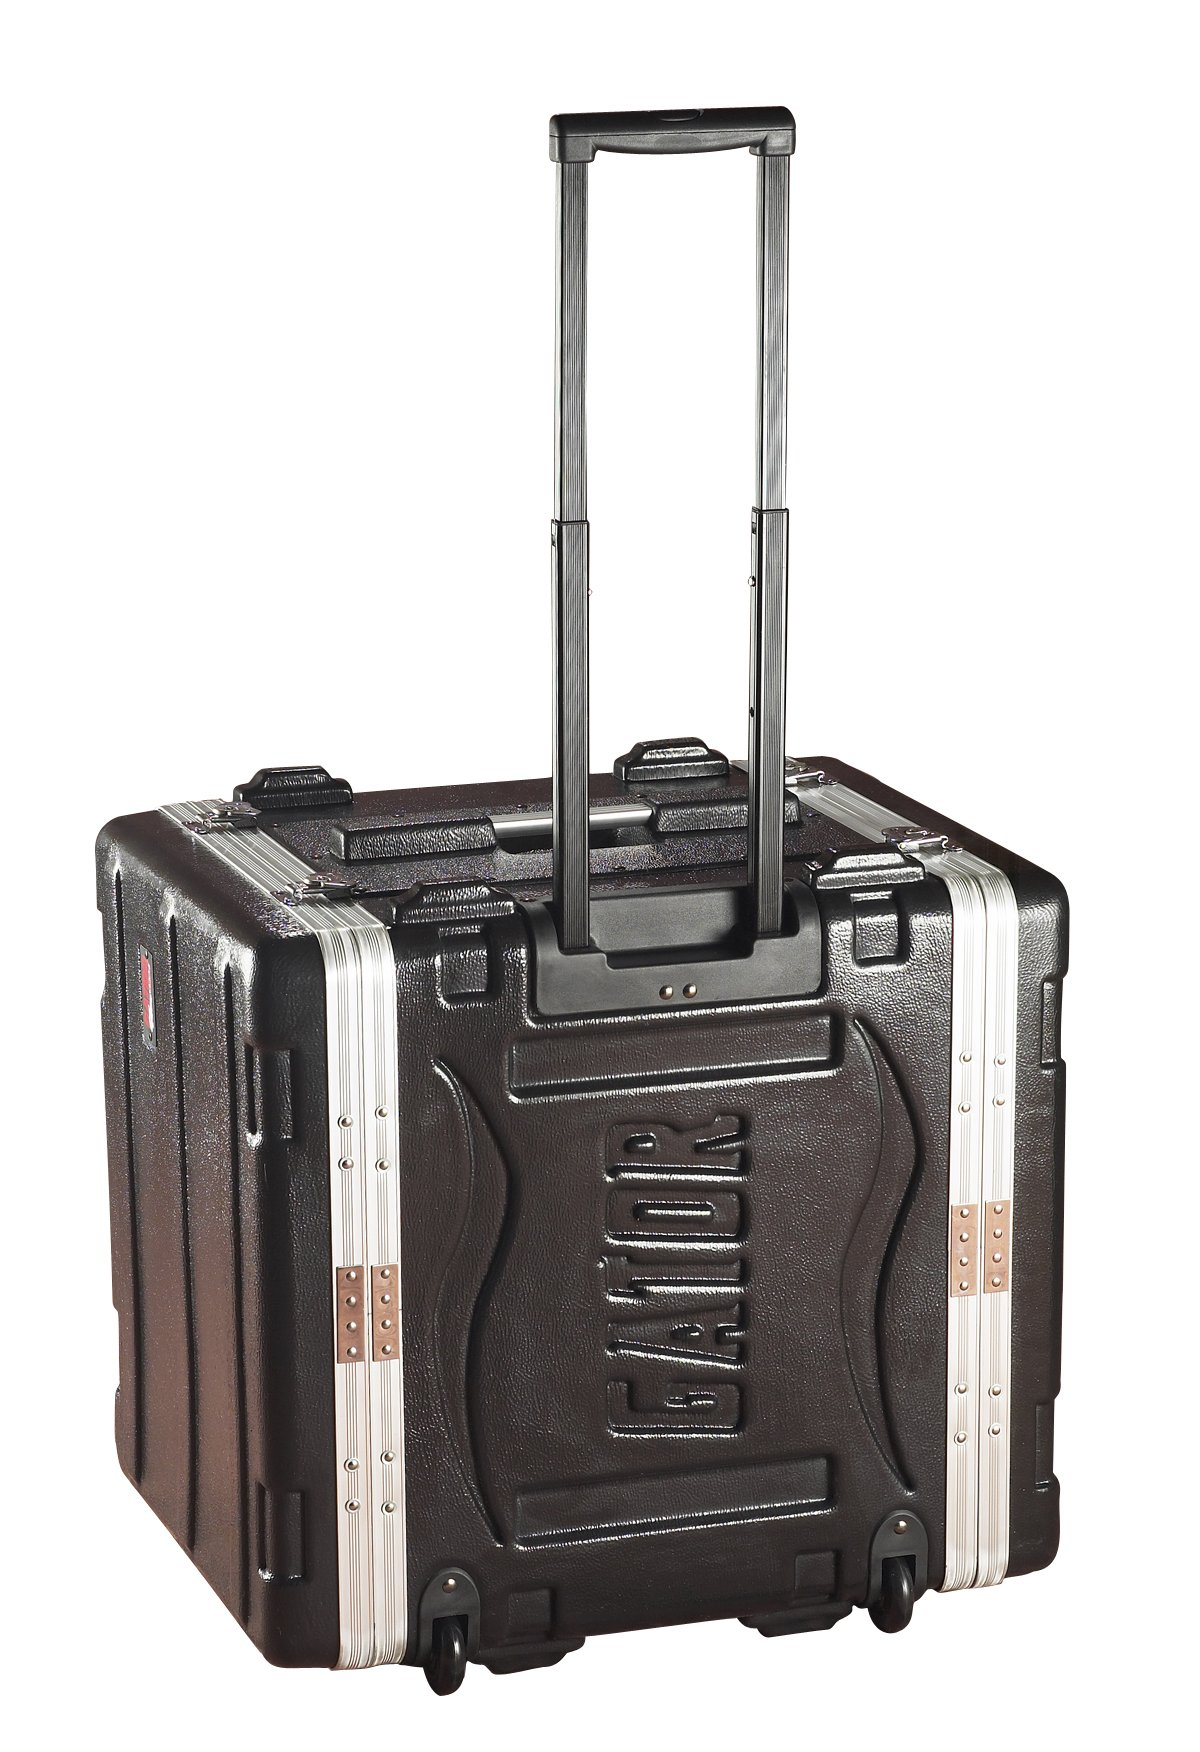 Gator Cases Lightweight Molded 4U Rack Case with Built-in Power Supply, Heavy Duty Latches, Retractable Tow Handle, and Recessed Wheels; 19.25'' depth, 10U (GRR-10PL-US)